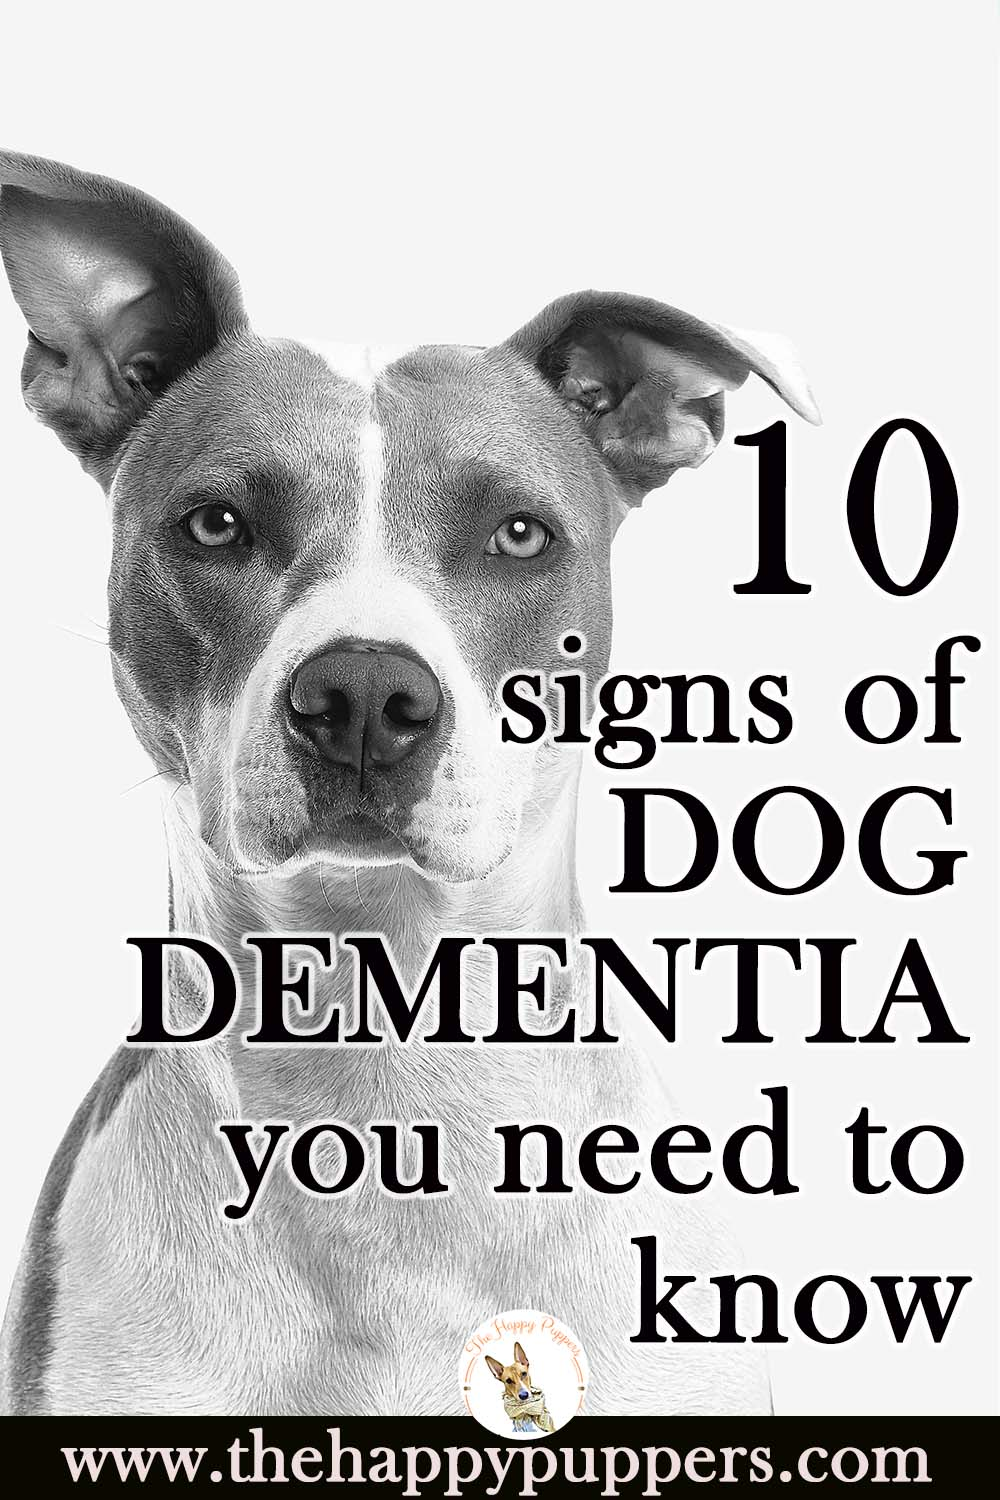 What is dog dementia